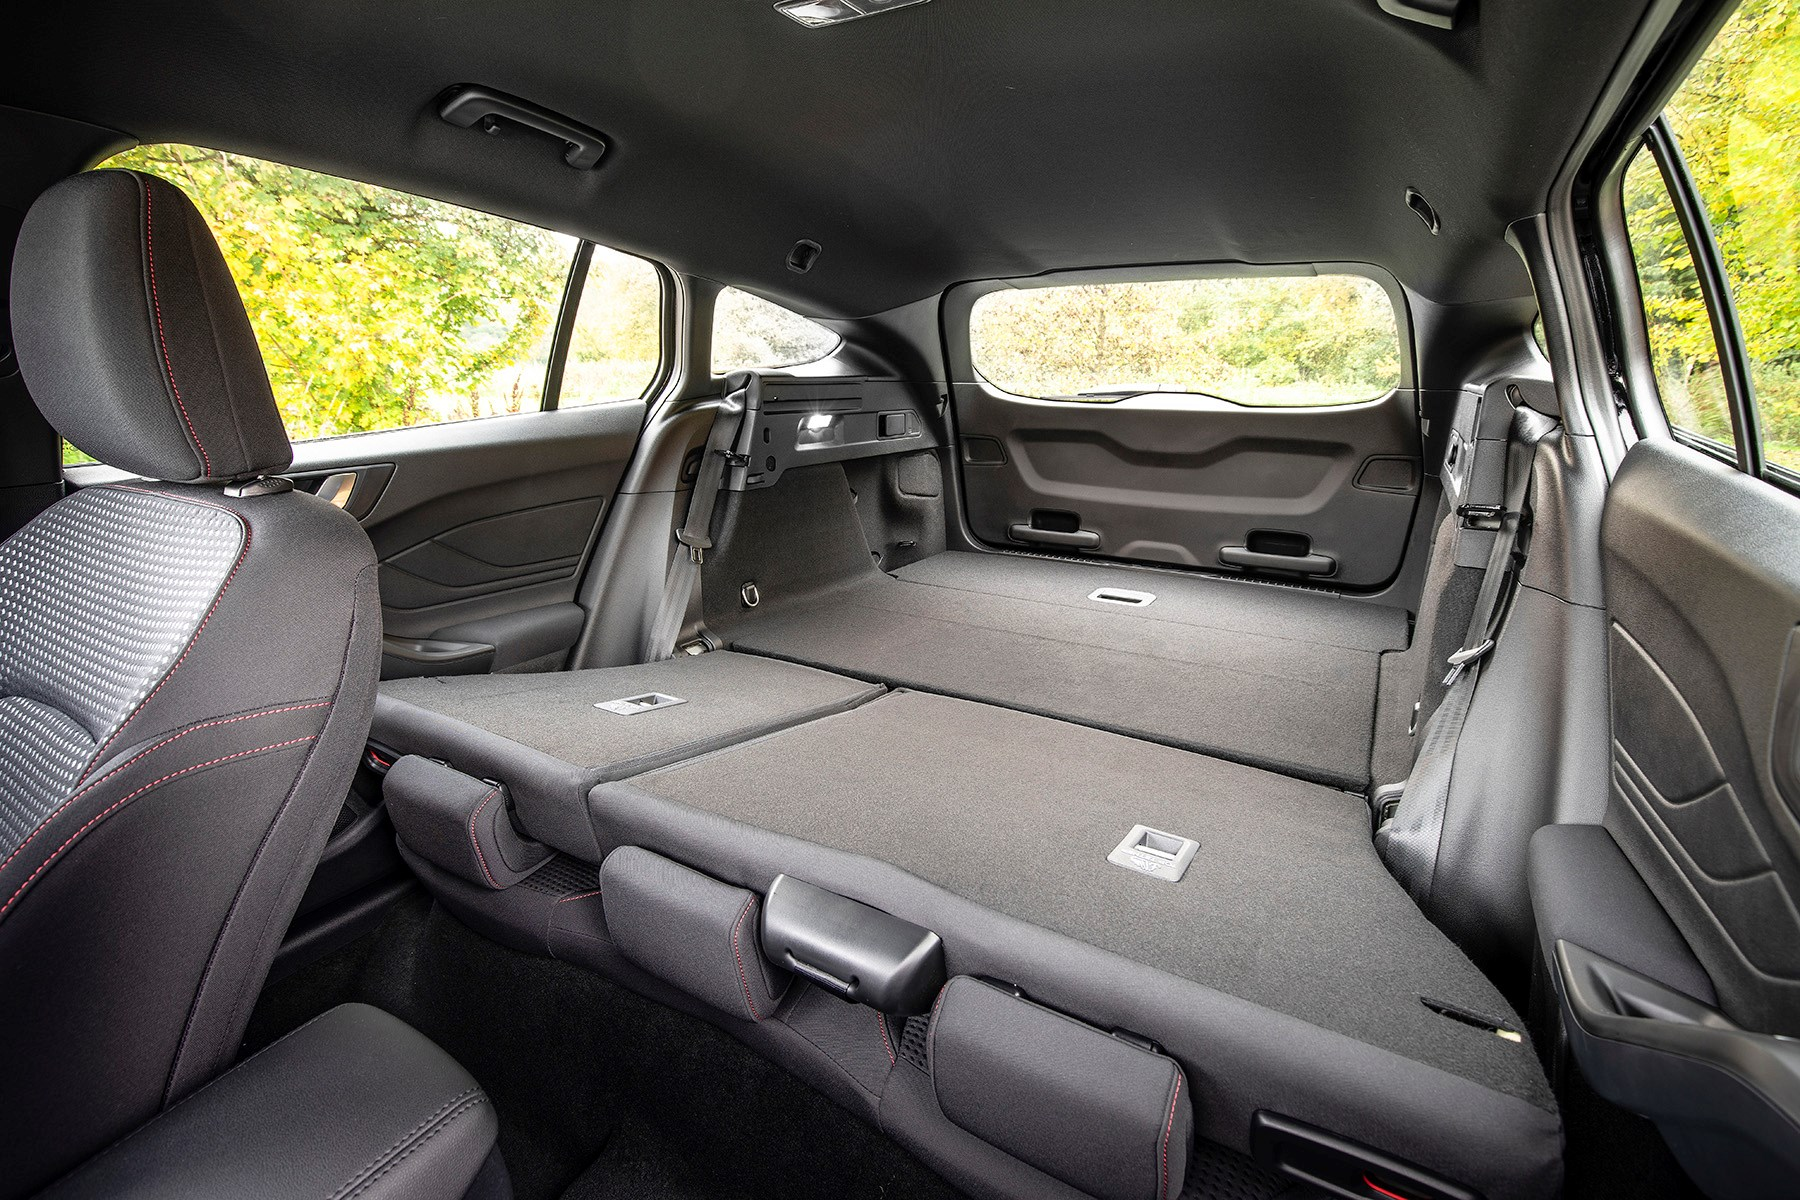 Ford Lease Deals >> New Ford Focus Estate (2018) review: refreshing simplicity ...